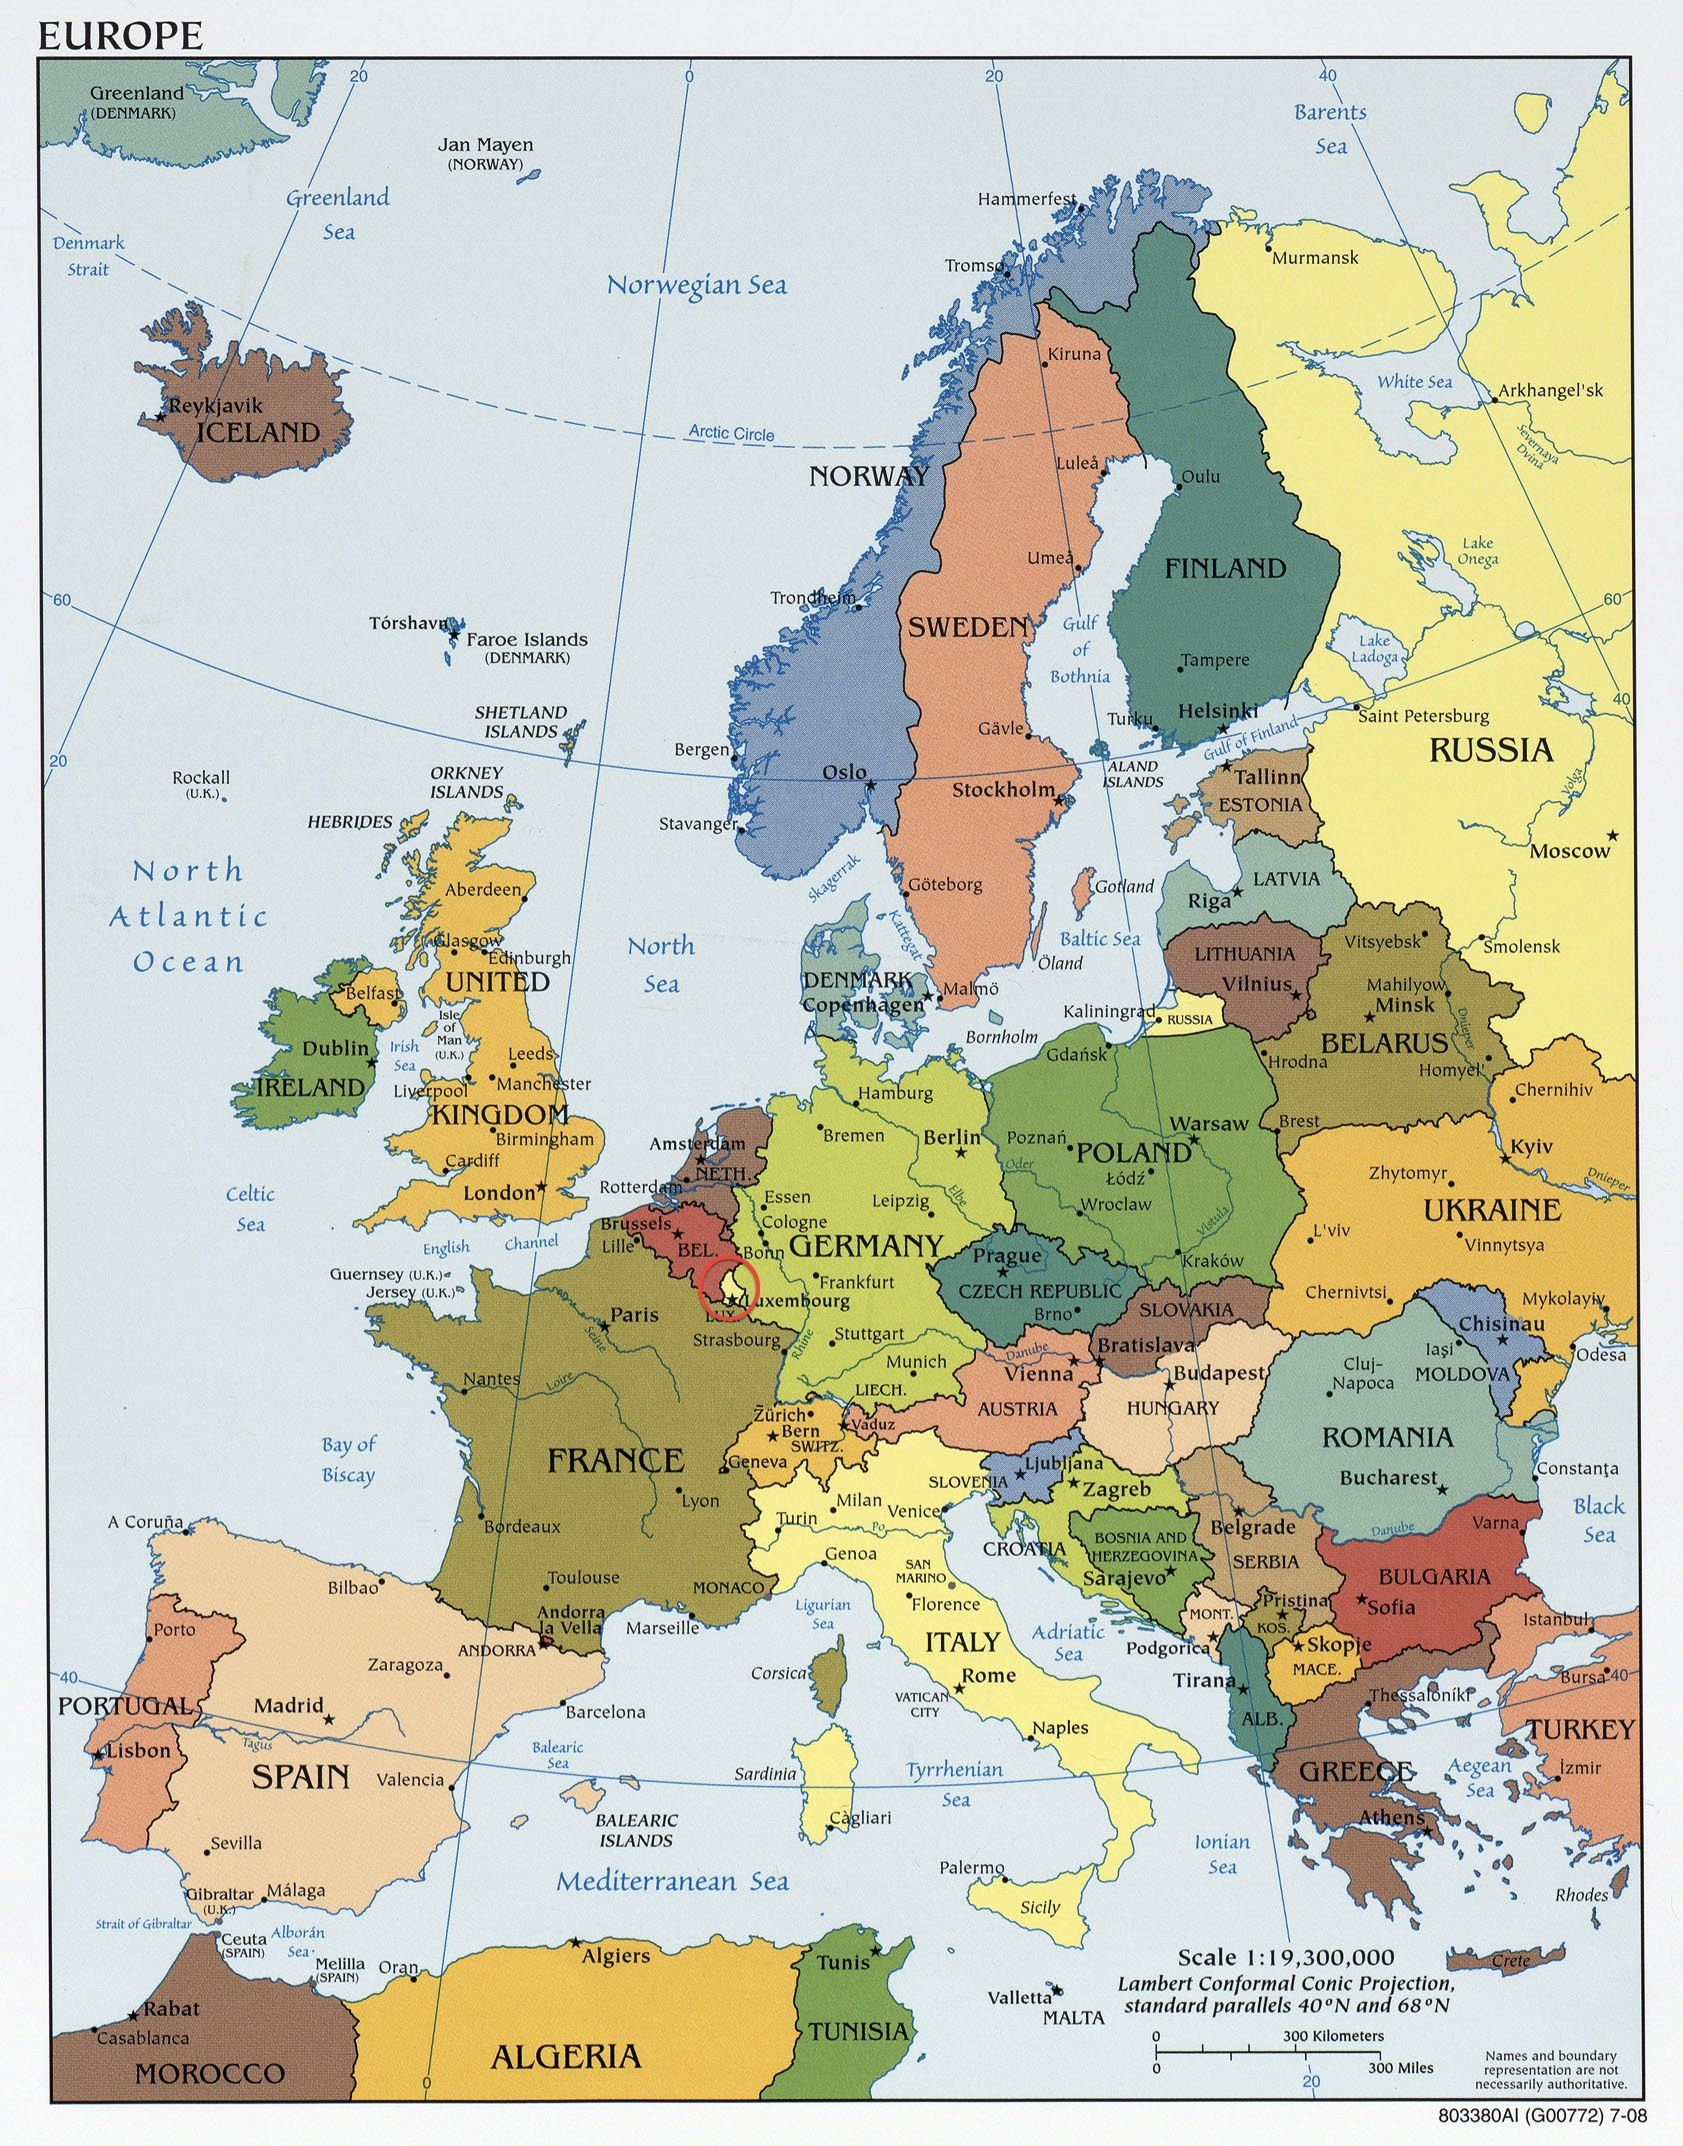 Map Of Europe Luxemburg.Luxembourg Political Map Of Europe With The Location Of